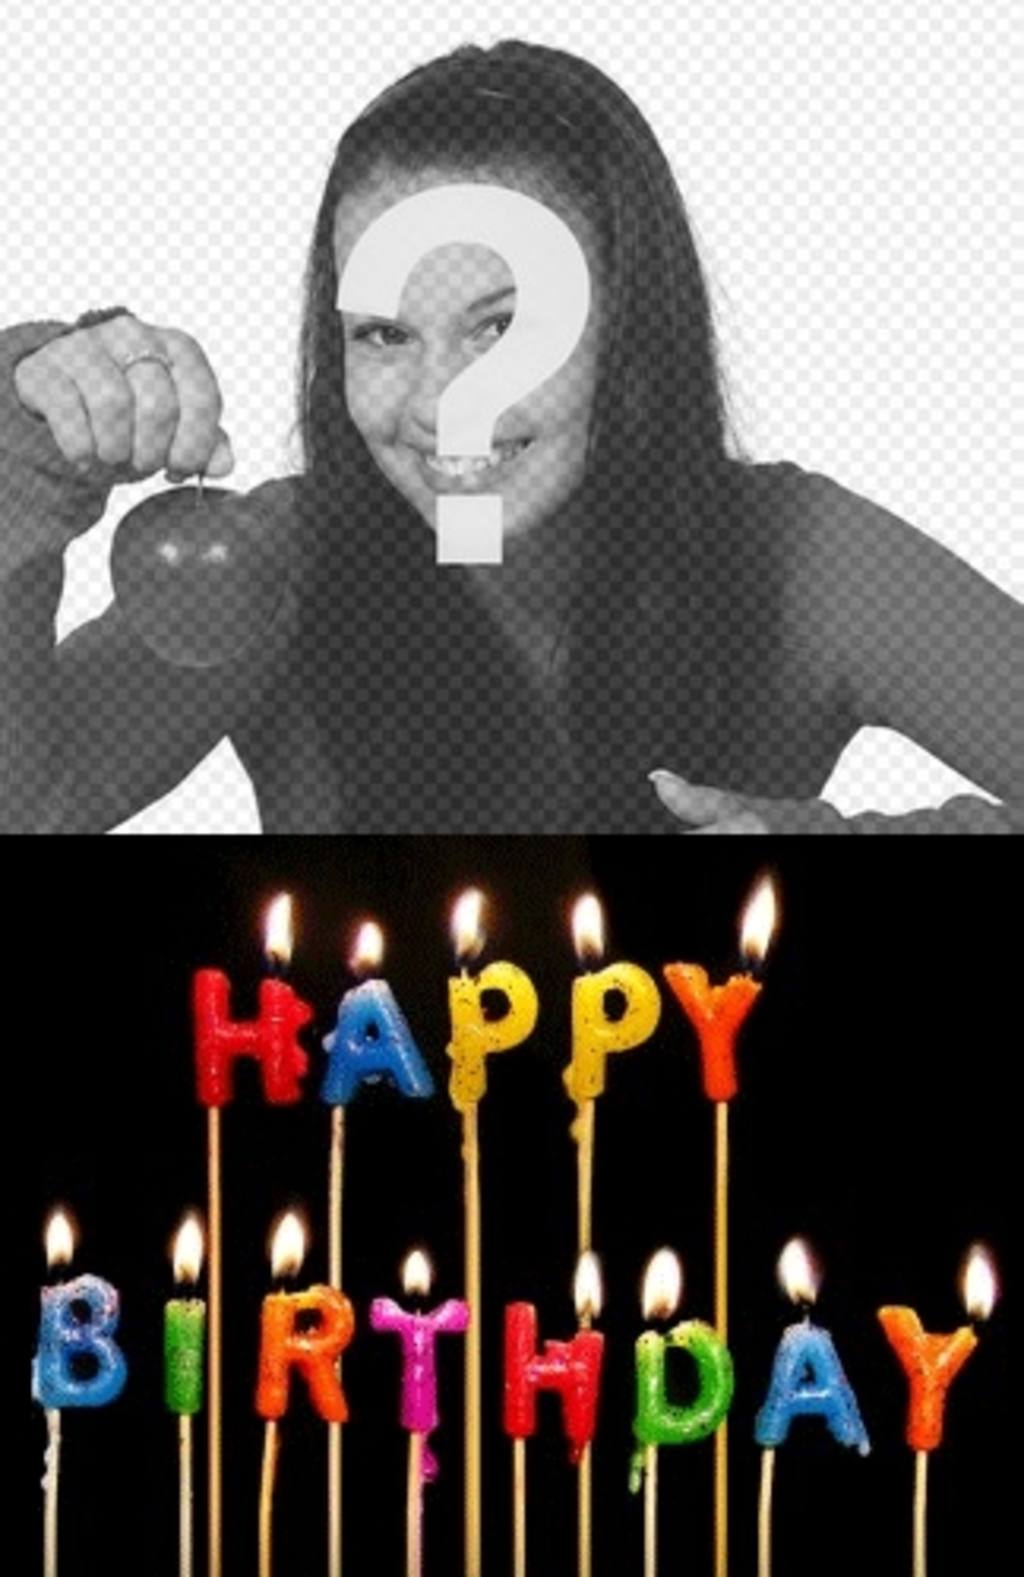 Template To Create A Personalized Birthday Card With Your Photo You Can Upload Add